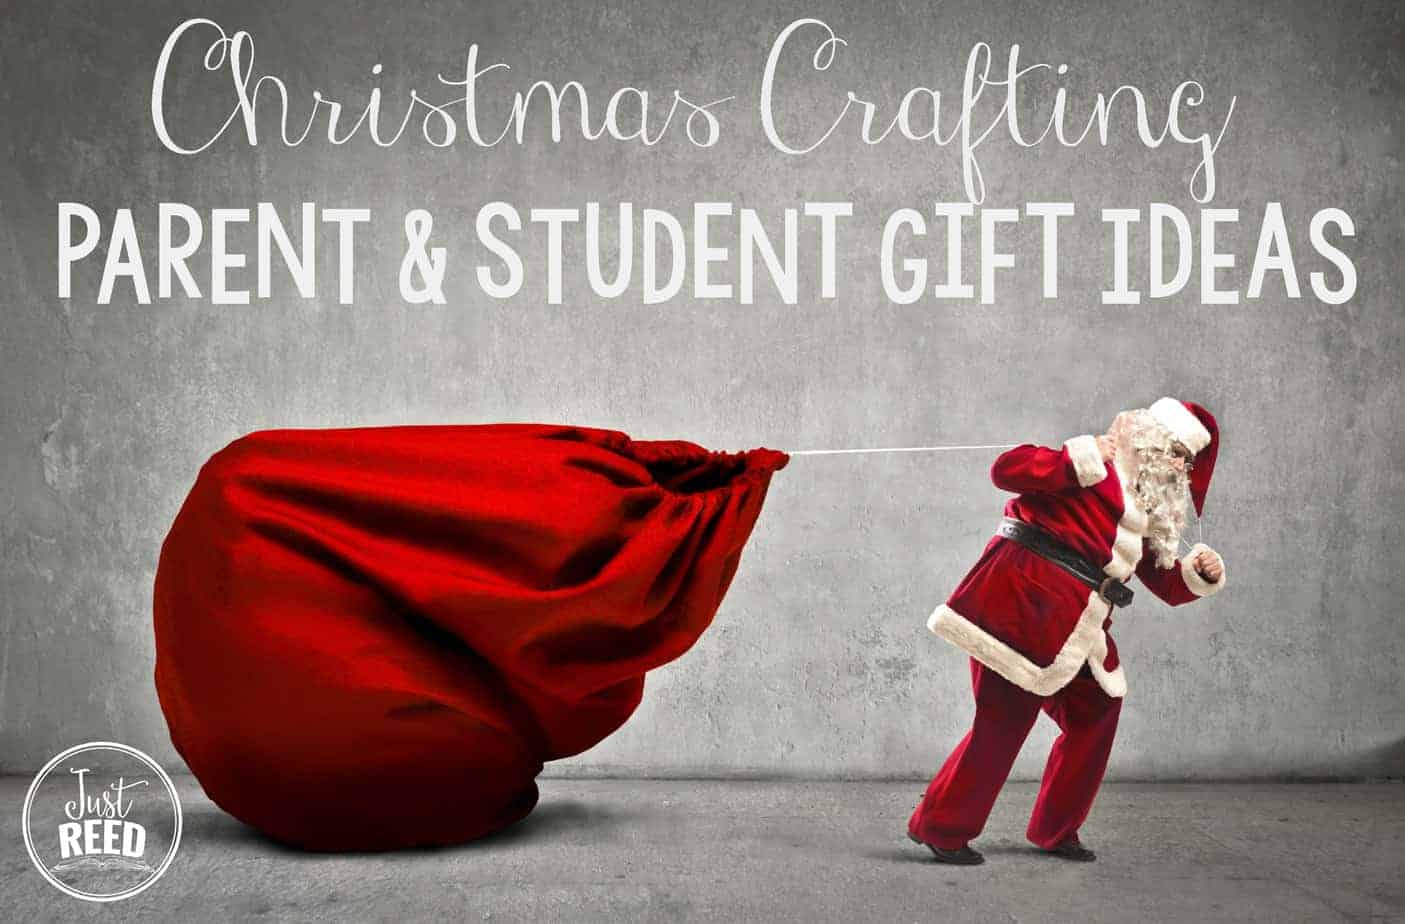 Christmas Crafting: Parent and Student Gift Ideas - Just Reed